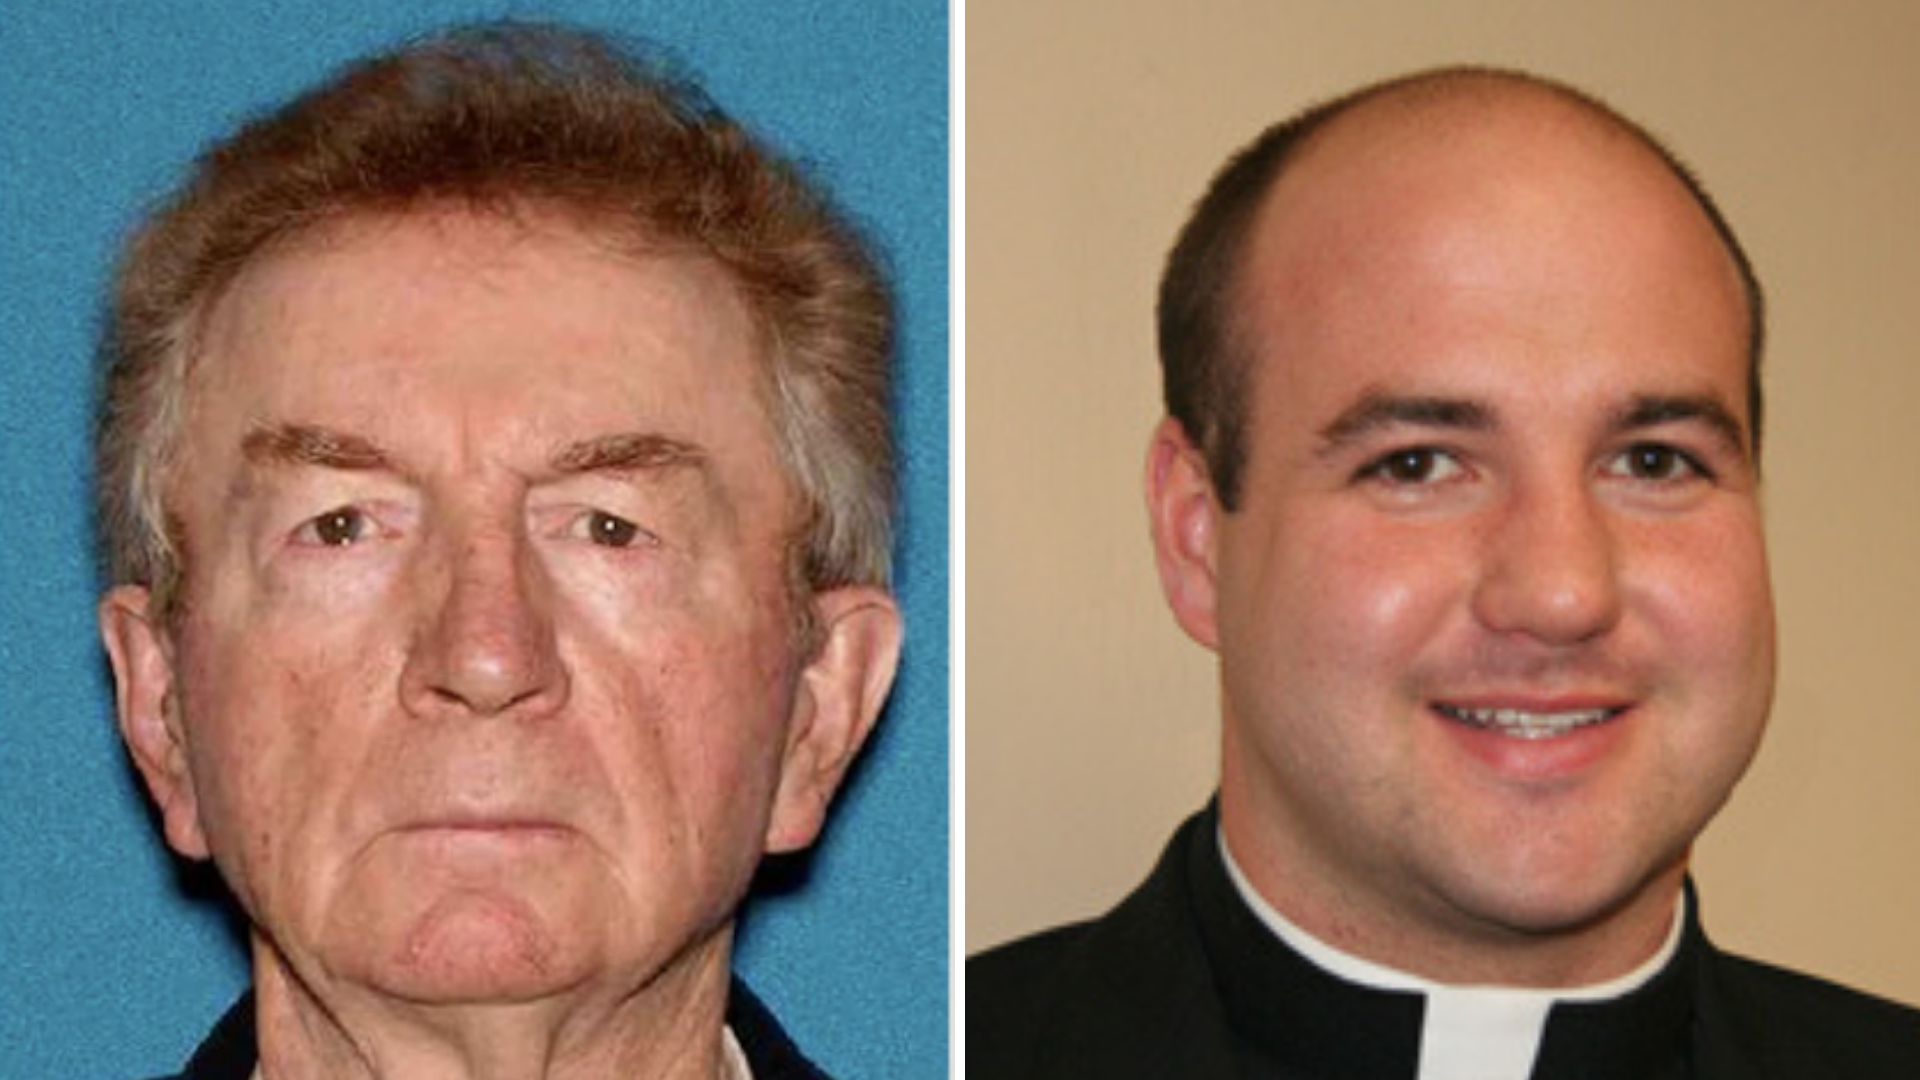 When a priest is accused of assault, you need to tell us, longtime Catholic says